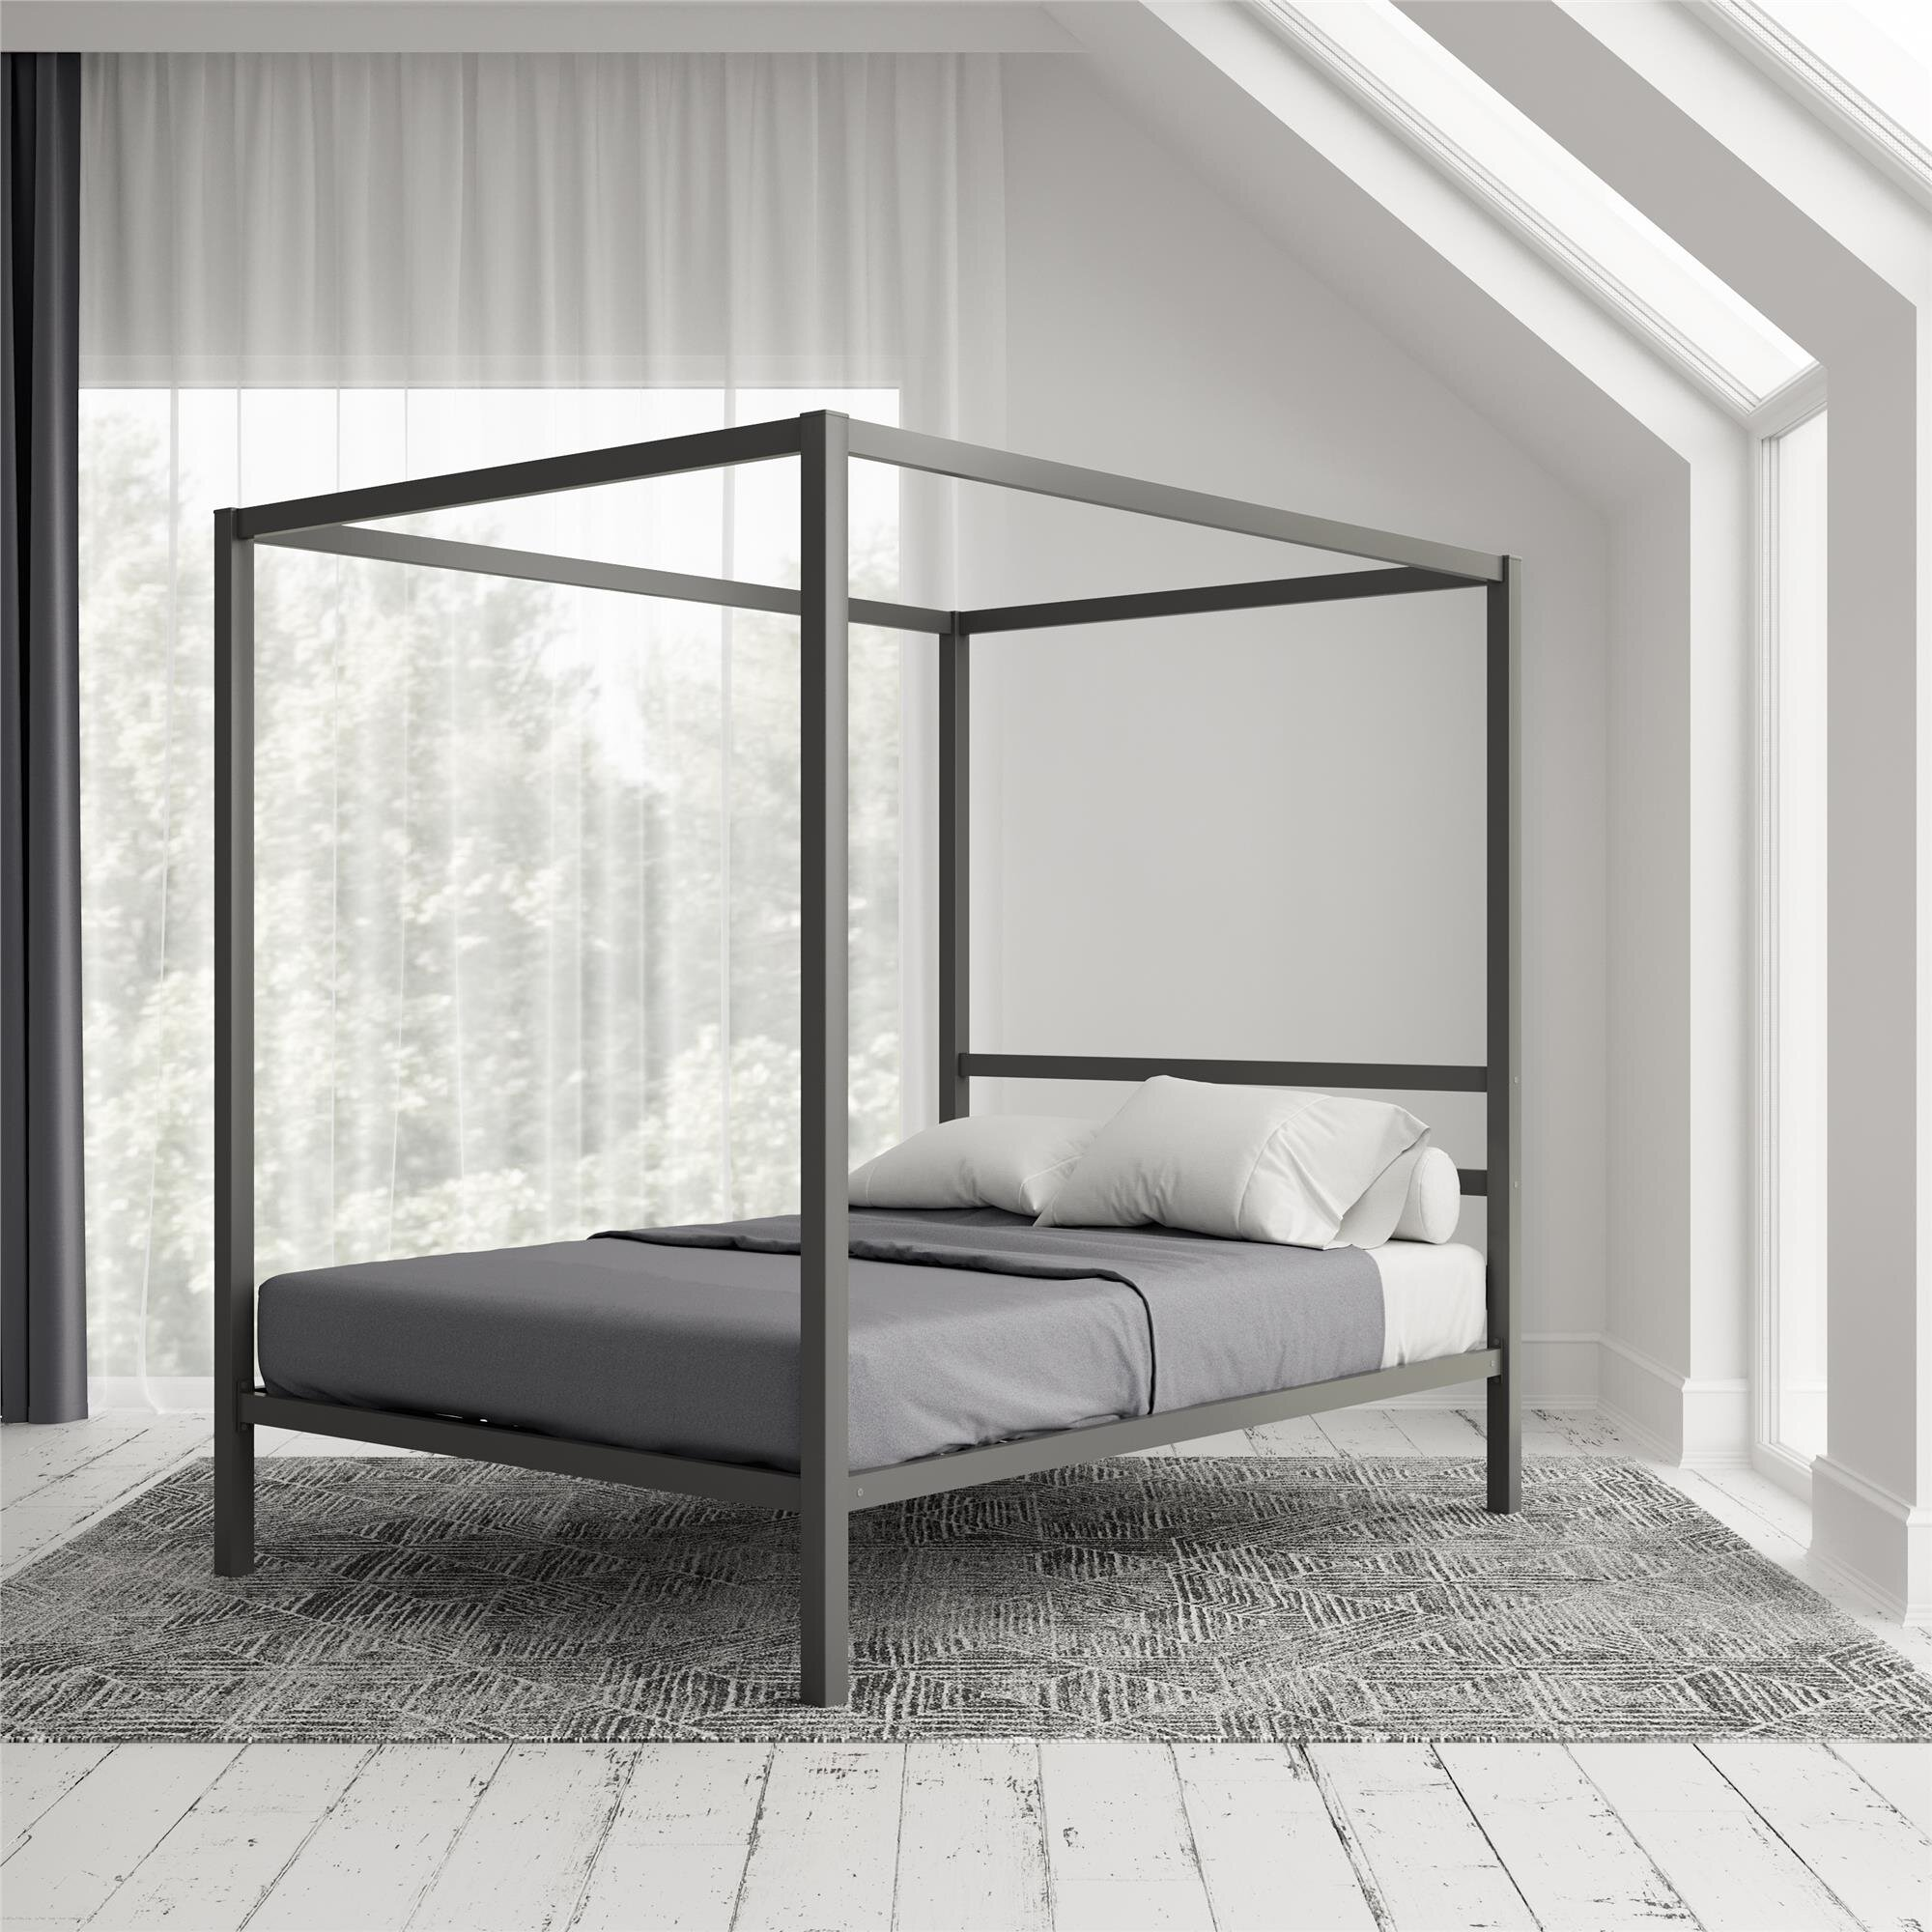 Picture of: Canopy Queen Size Beds You Ll Love In 2020 Wayfair